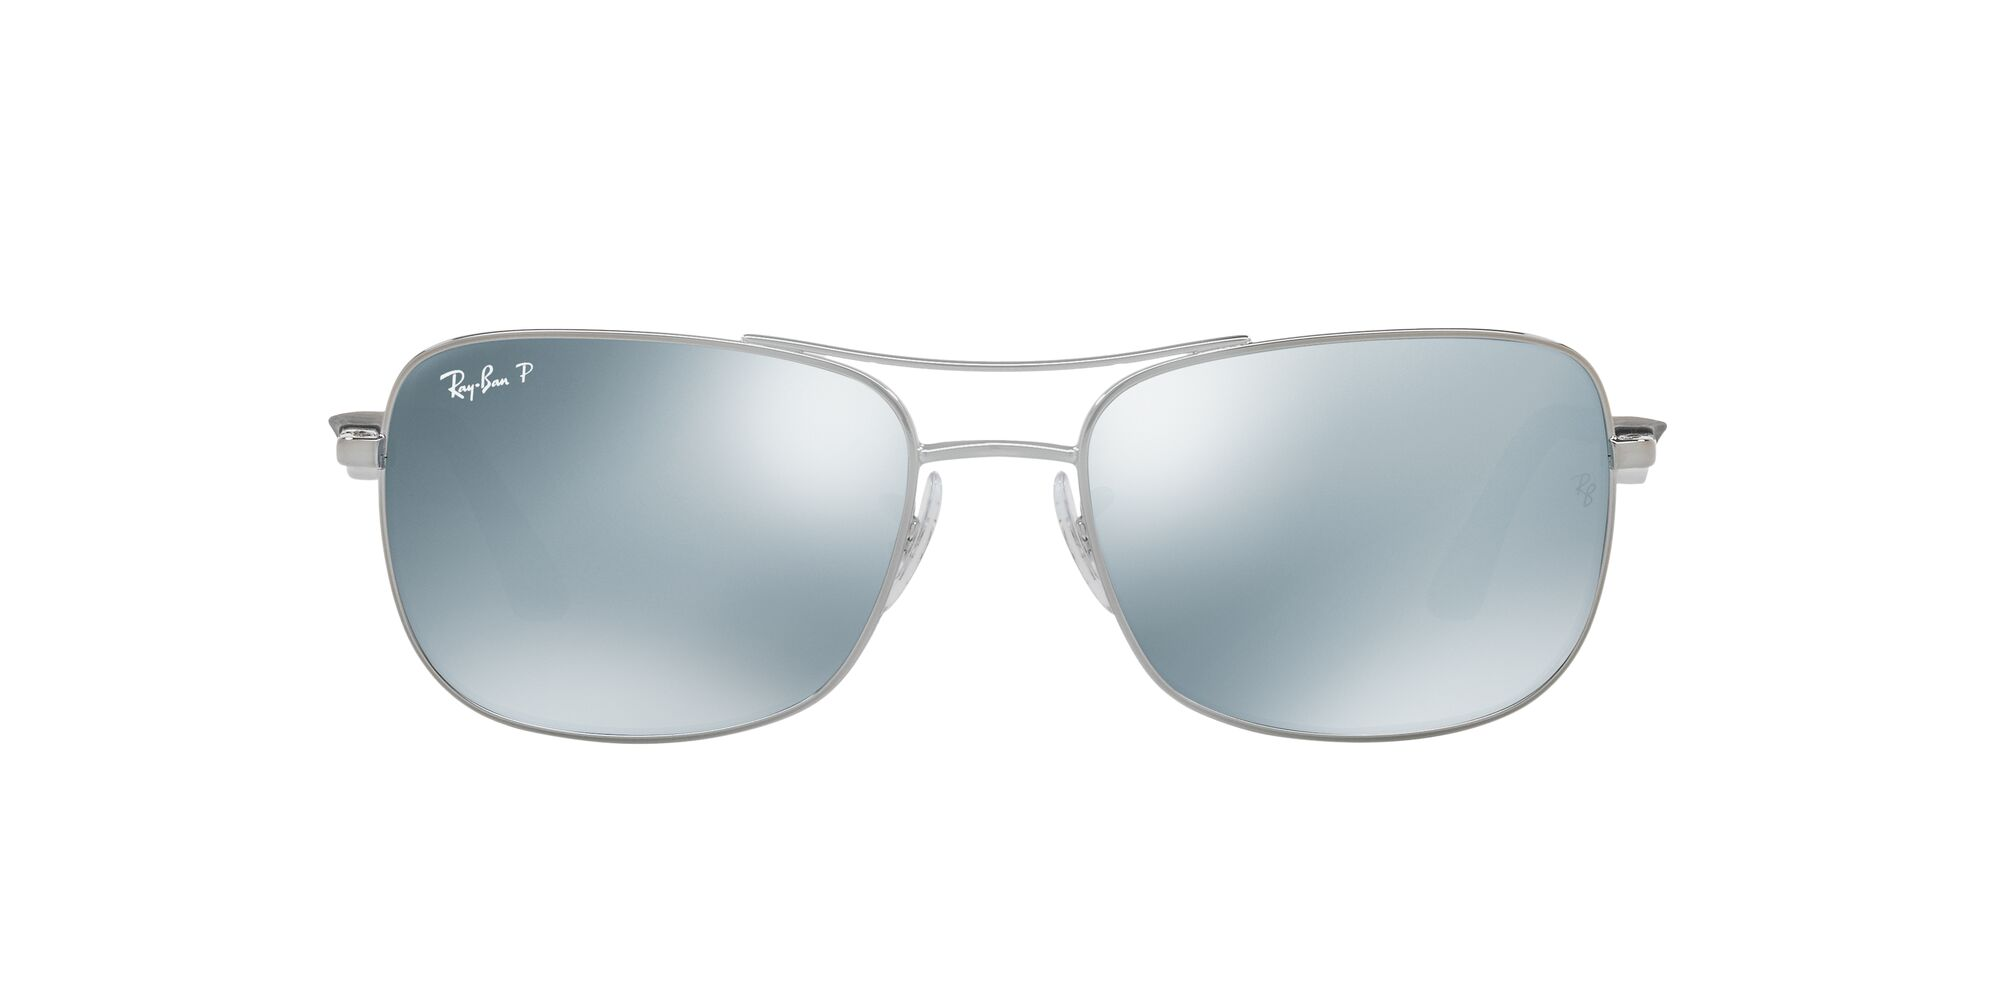 Front Ray-Ban Ray-Ban 0RB3515 004/Y4 61/17 Grijs/Groen